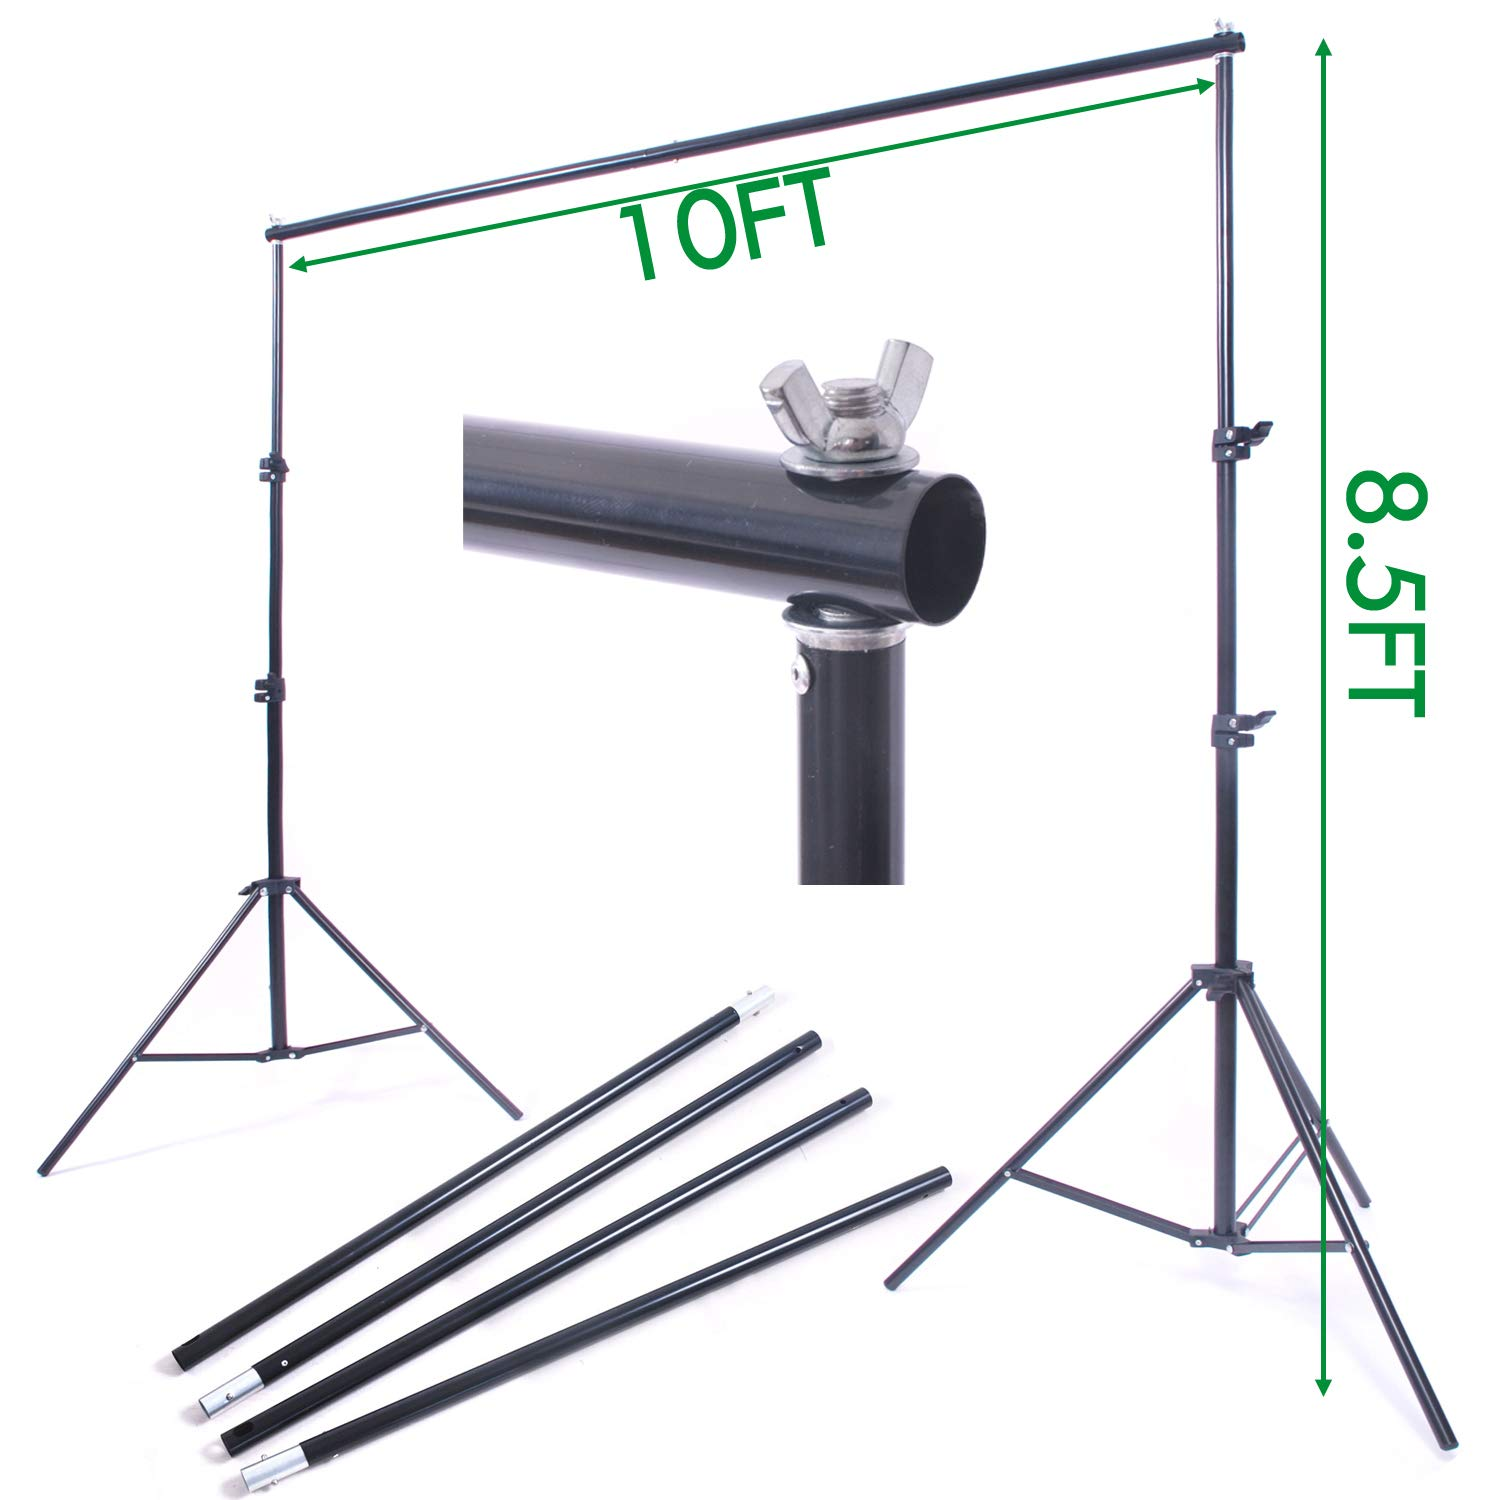 NiuBea Studio 10Ft Adjustable Background Stand Backdrop Support System for Photo Video by Niubea (Image #1)